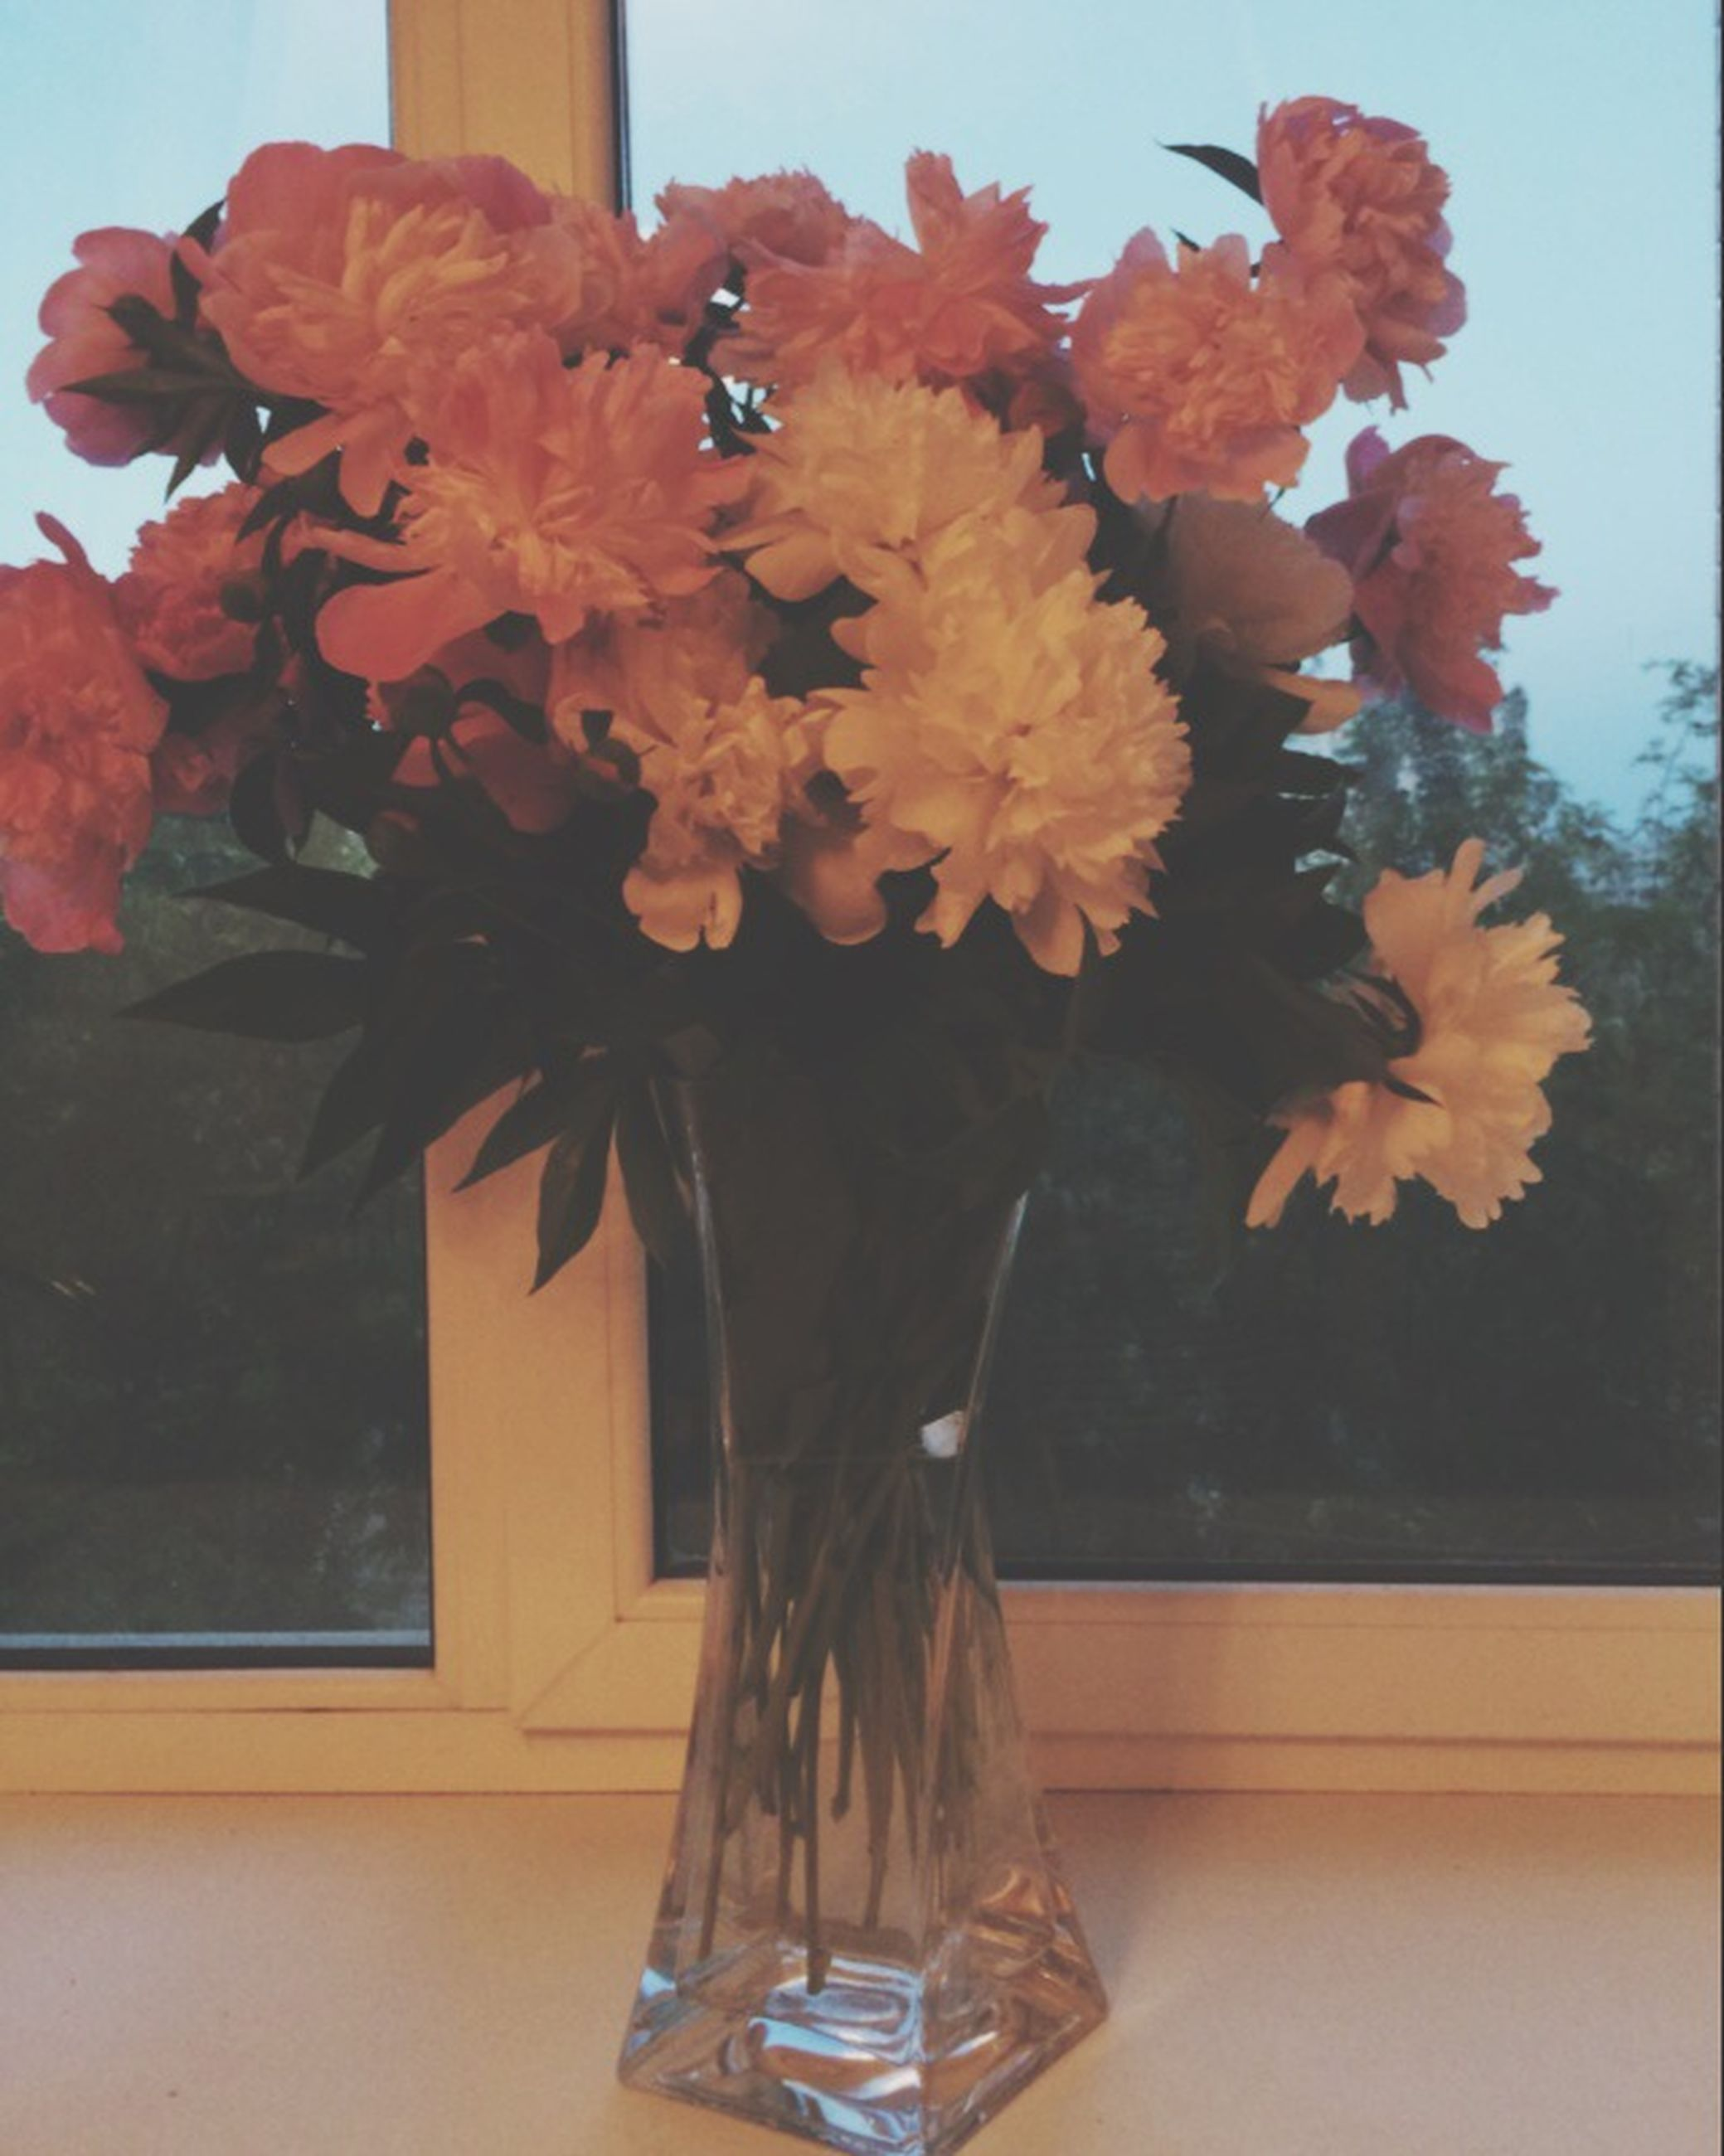 flower, vase, indoors, fragility, freshness, potted plant, petal, plant, table, growth, window, decoration, home interior, wall - building feature, flower head, glass - material, orange color, window sill, built structure, architecture